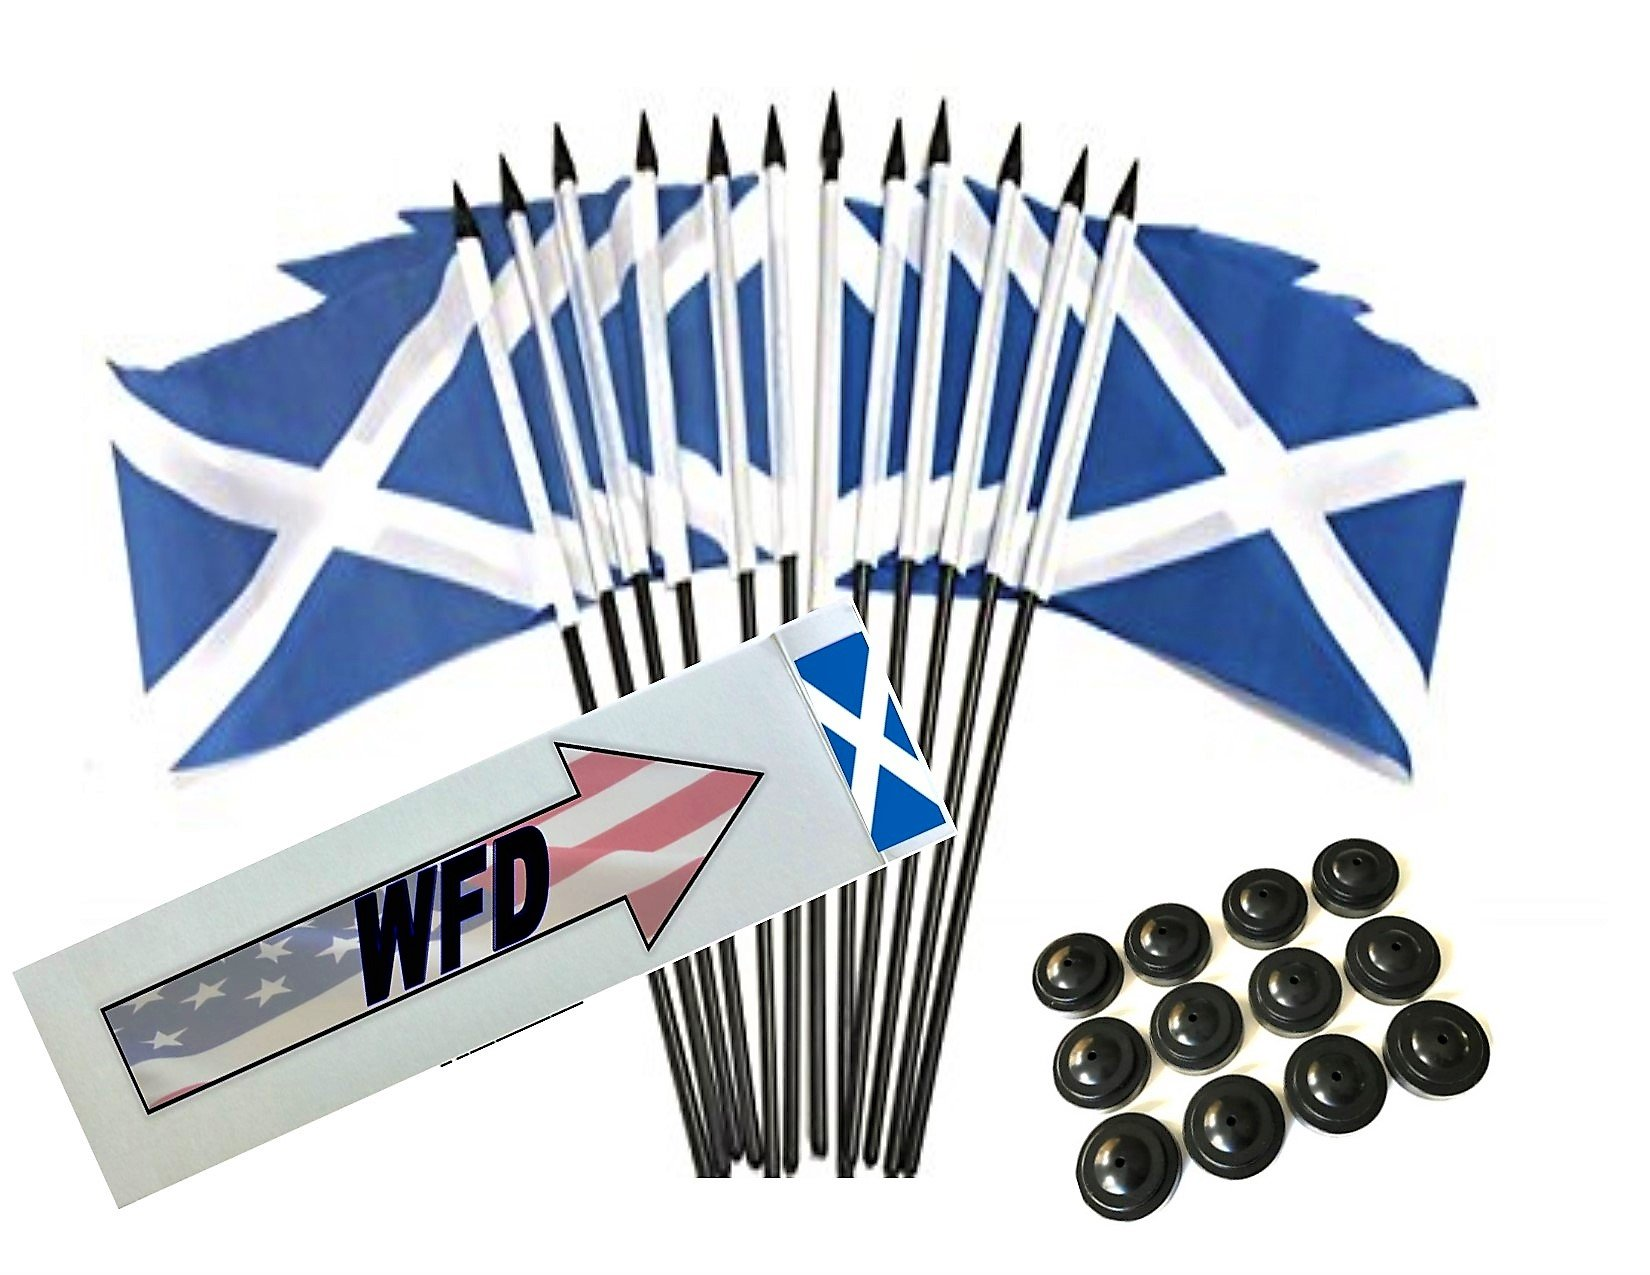 Box of 12 Scotland Cross 4''x6'' Polyester Miniature Desk & Little Table Flags, 4x6 Scottish Cross Small Mini Hand Waving Stick Flags with 12 Flag Bases (Stands)